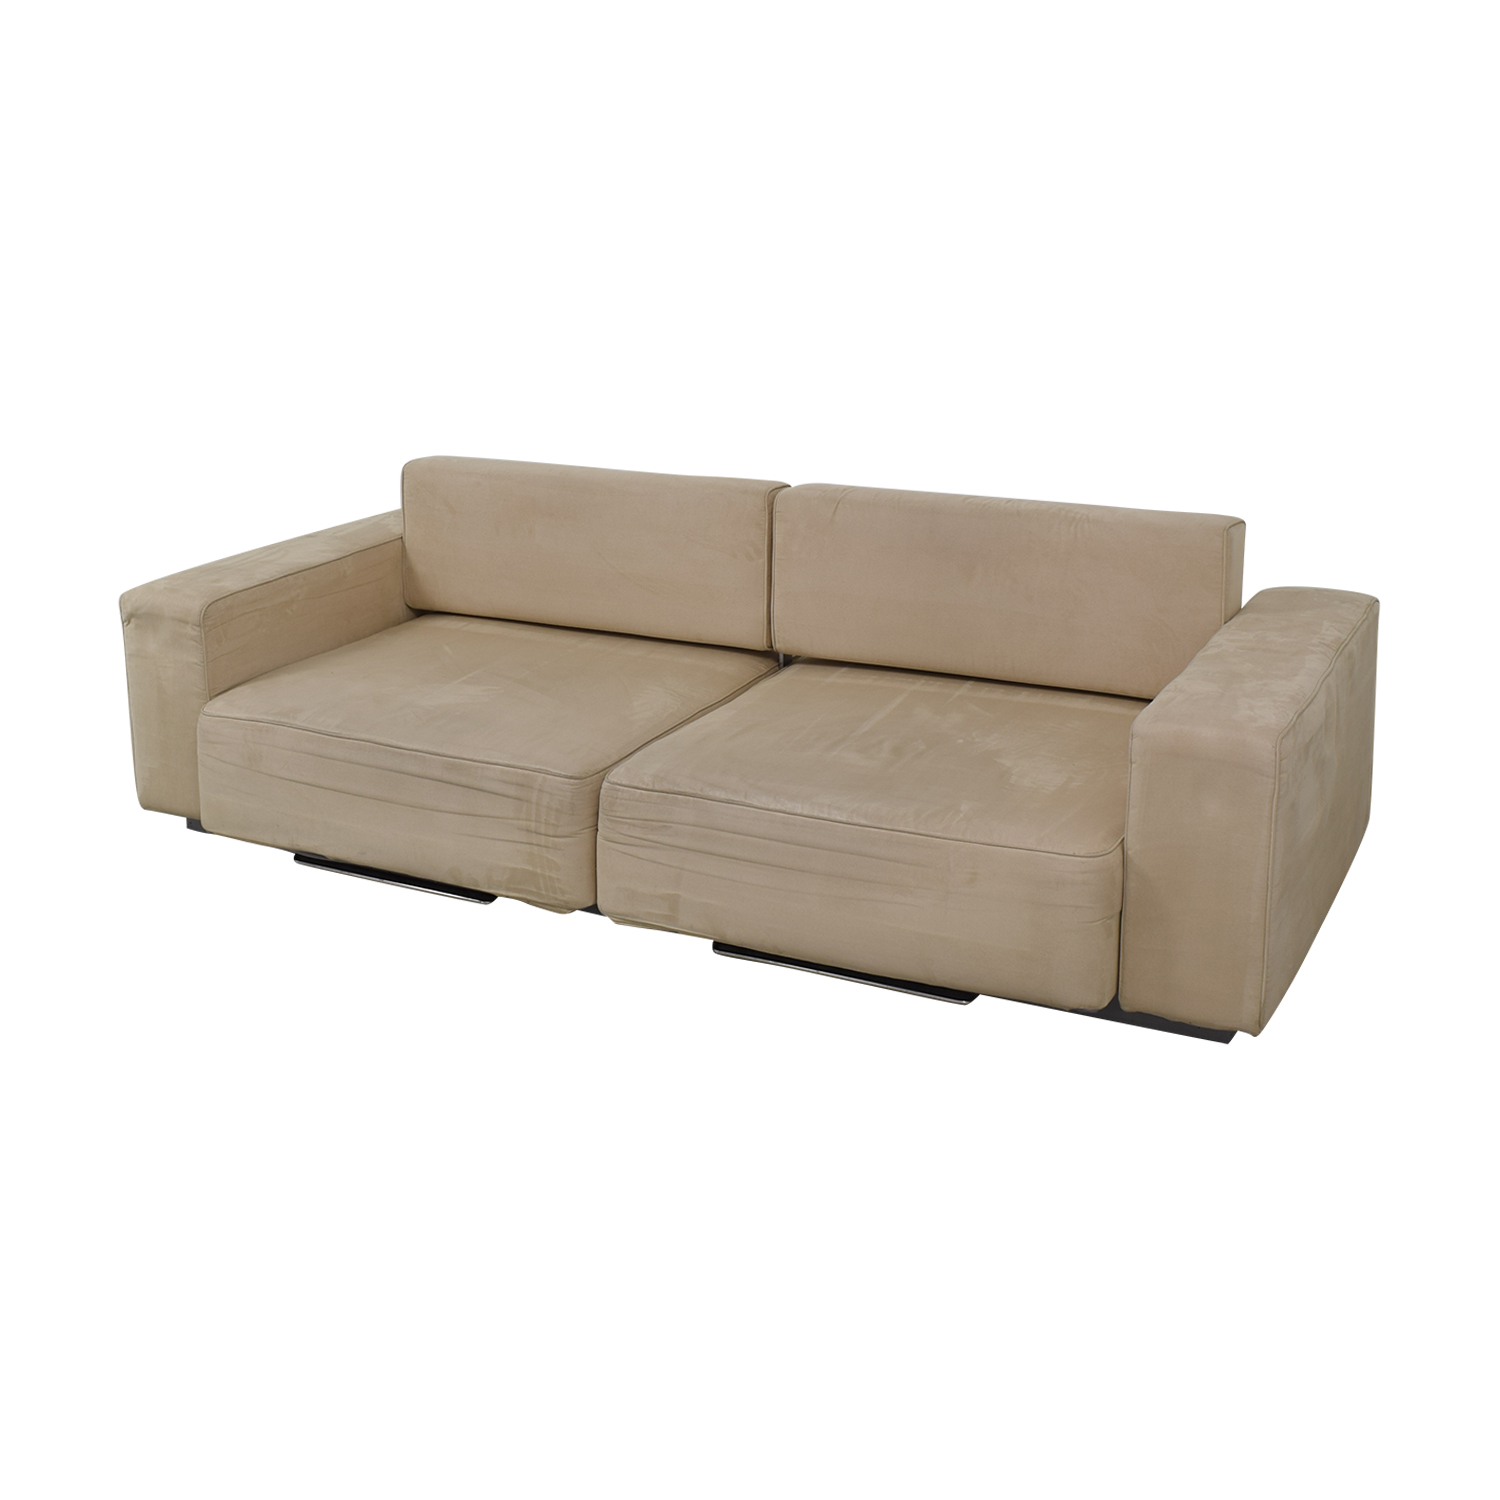 Astonishing 83 Off Bt Design Bt Design Microfiber Pullout Sofa Sofas Alphanode Cool Chair Designs And Ideas Alphanodeonline